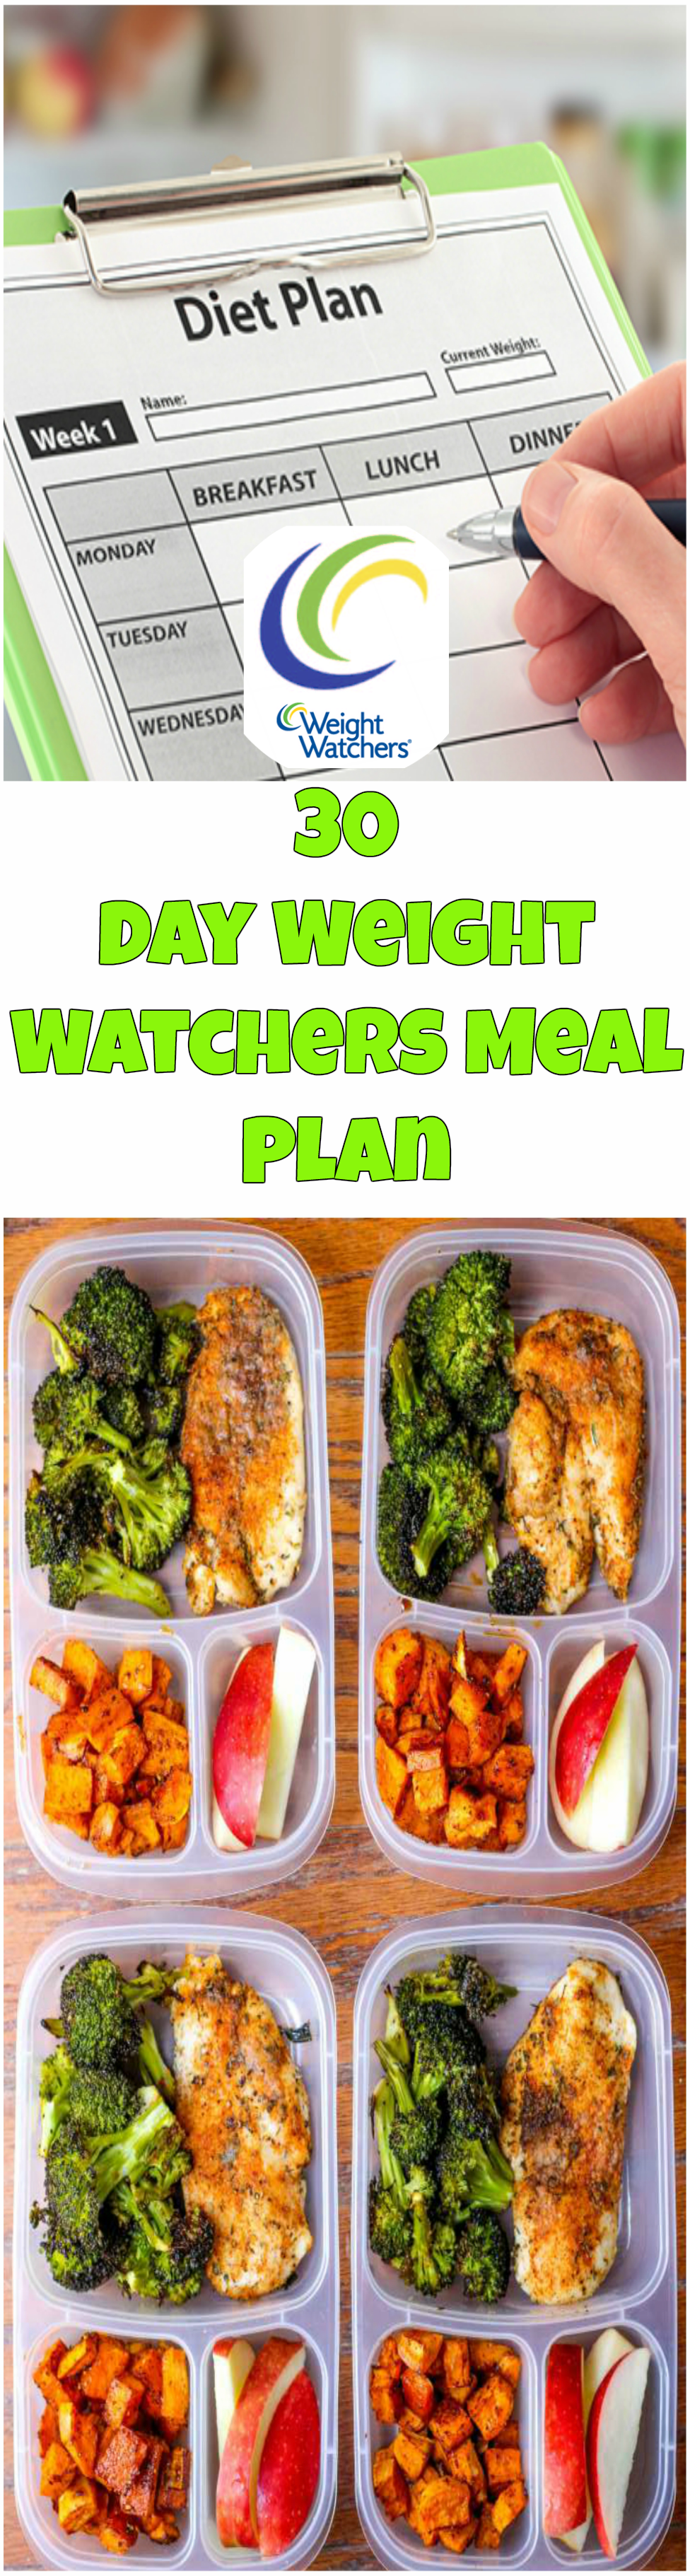 30 day weight watchers meal plan healthy living pinterest